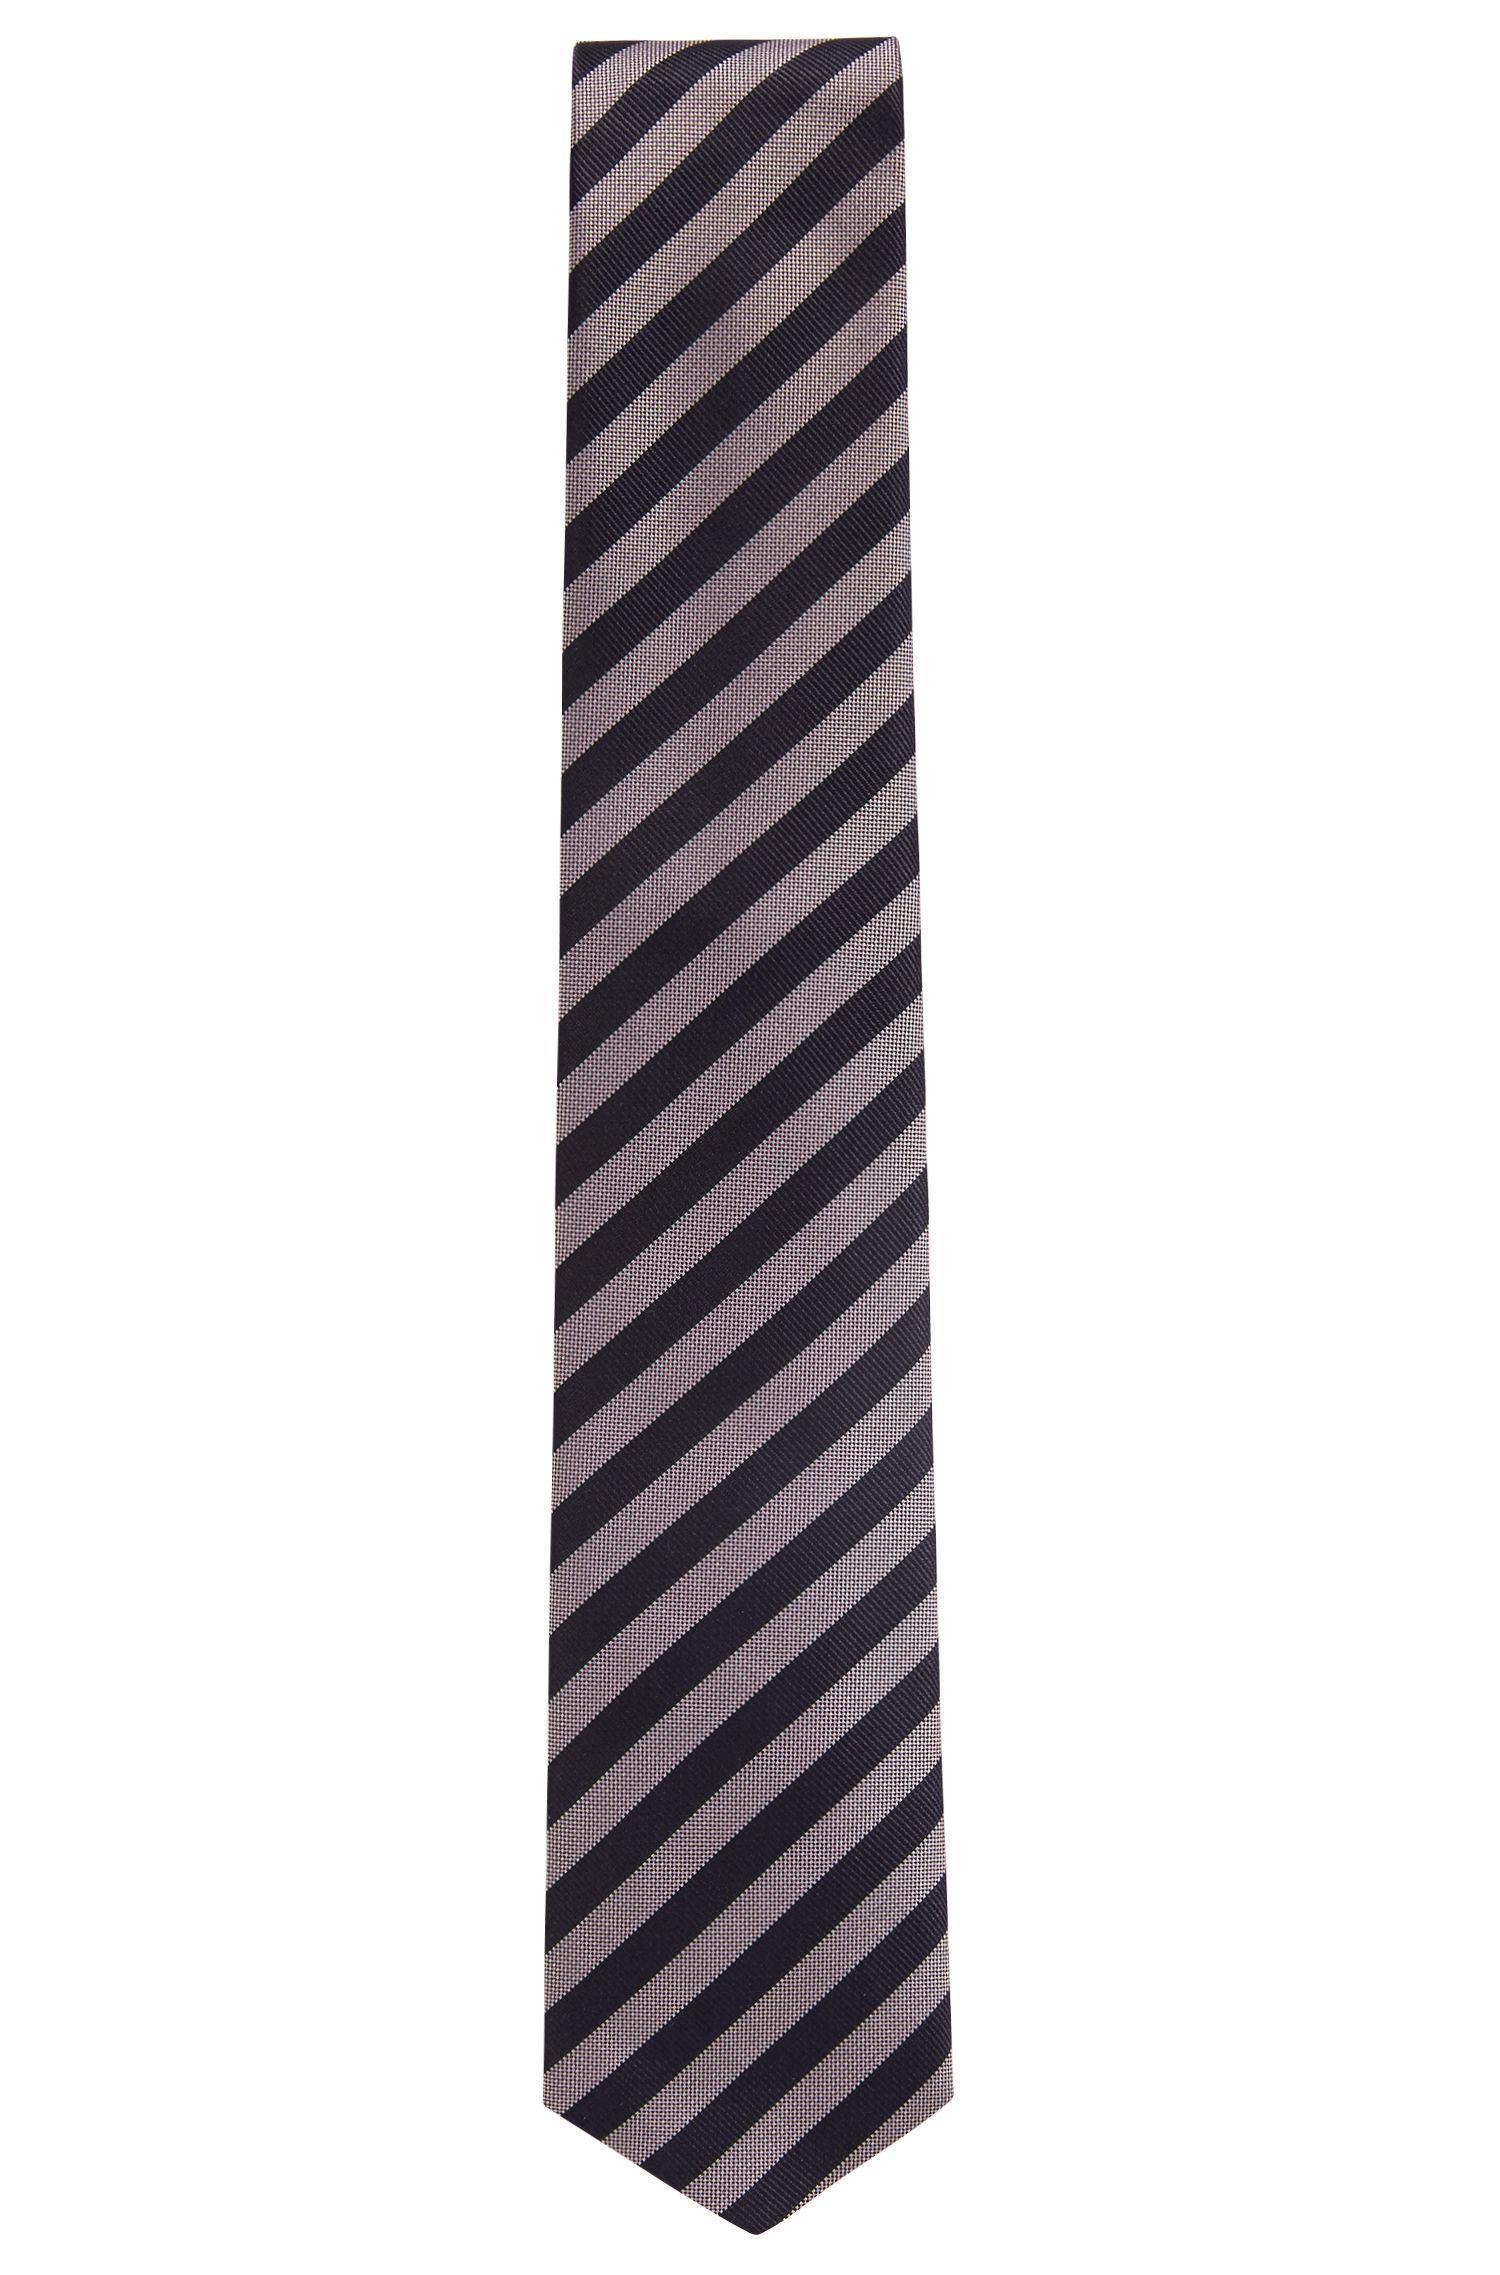 Water-repellent tie in silk jacquard with block stripes, light pink